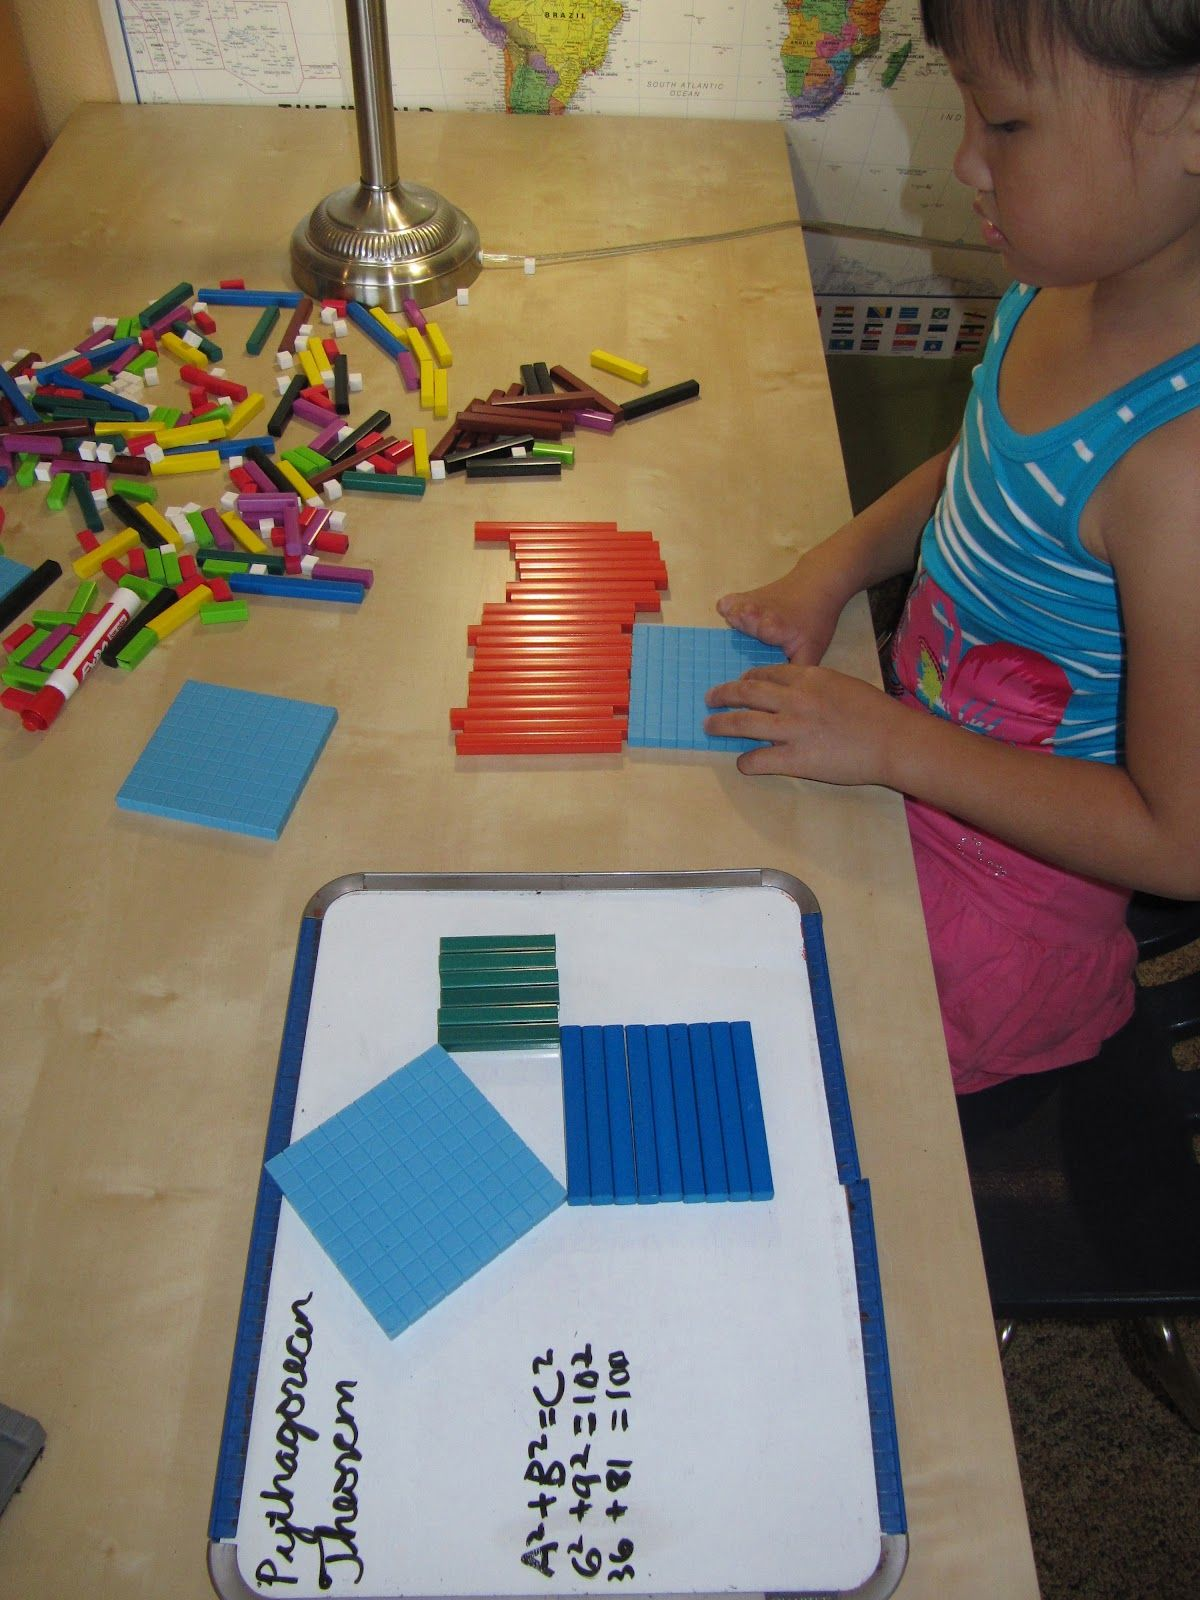 The Pythagorean Theorem Cuisenaire Rods